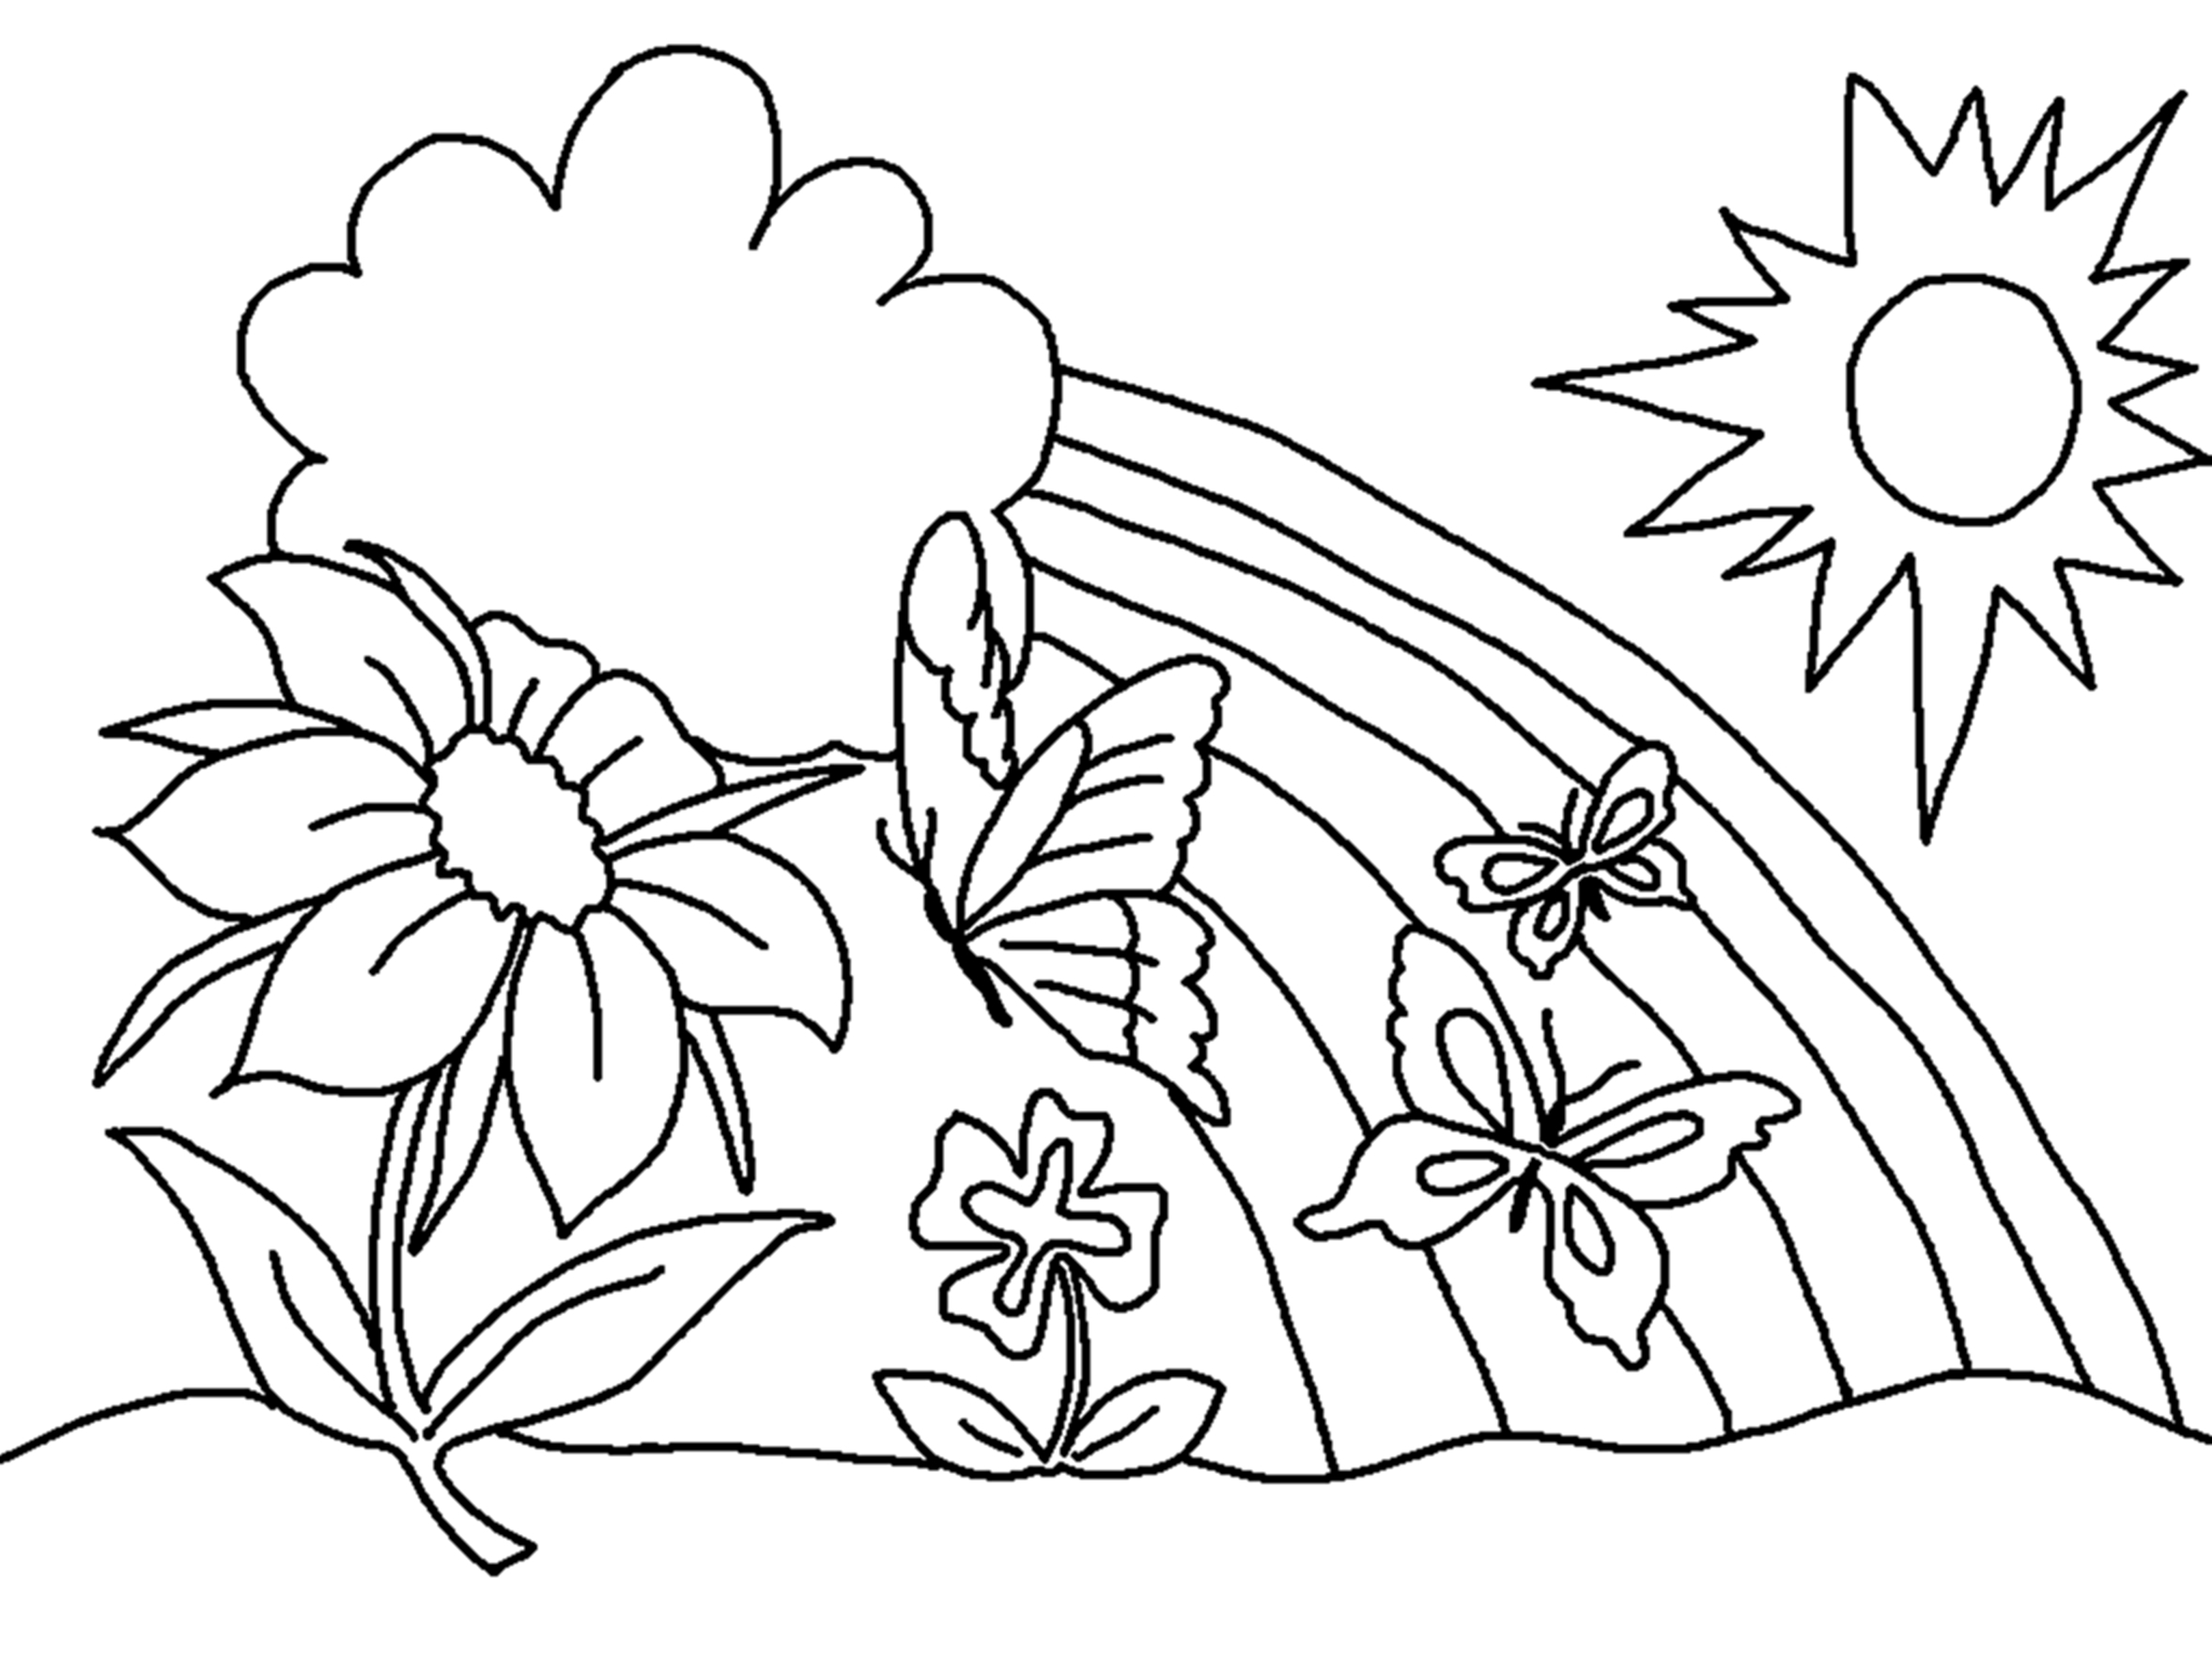 free printable flower coloring pages free printable flower coloring pages for kids best free printable coloring flower pages